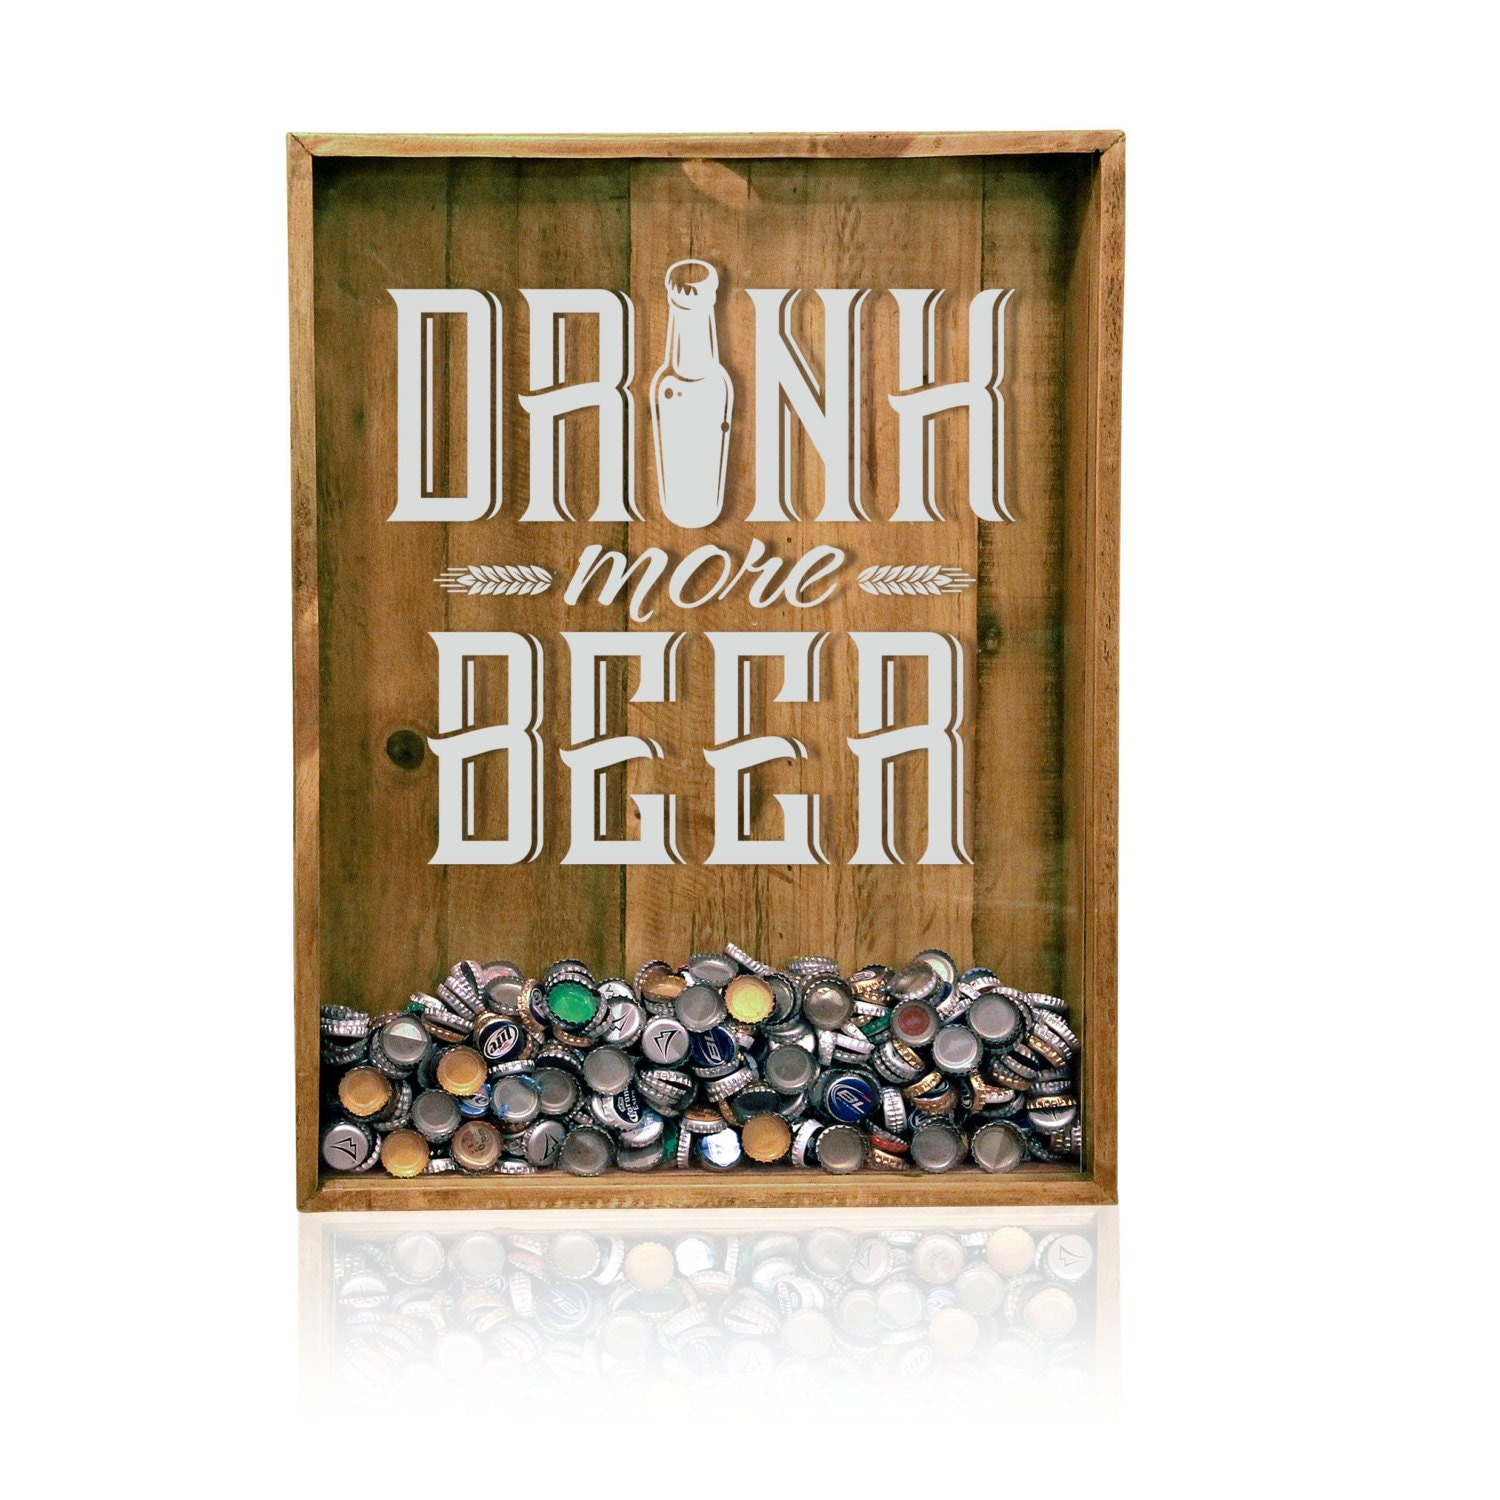 18x24 Reclaimed Wood Beer Bottle Cap Holder Wall Decor